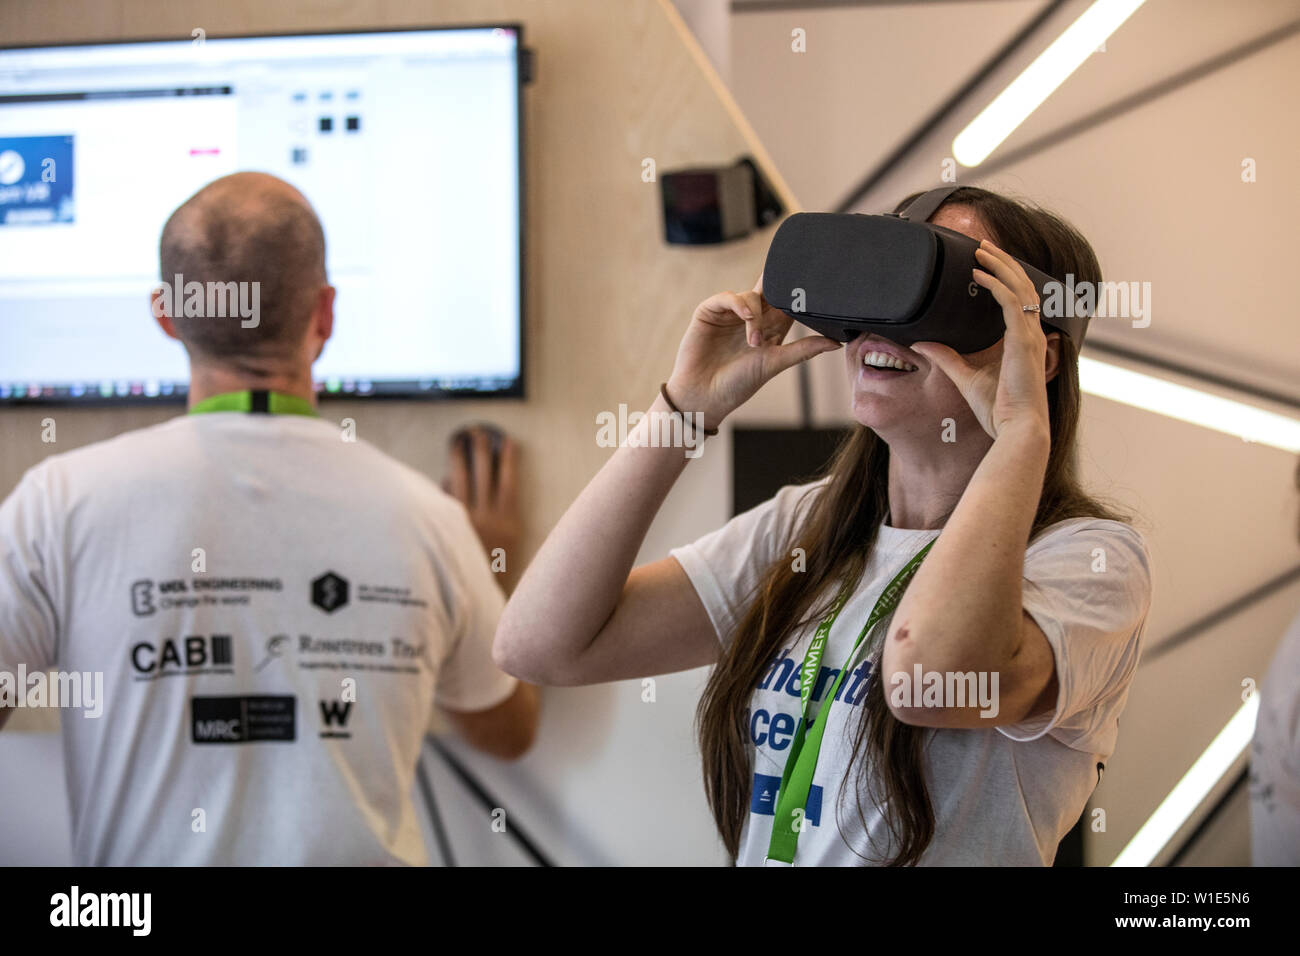 Royal Society Summer Science Exhibition, The Mathematics of Cancer, mathematical modelling providing insight into complex structures of tumours. - Stock Image